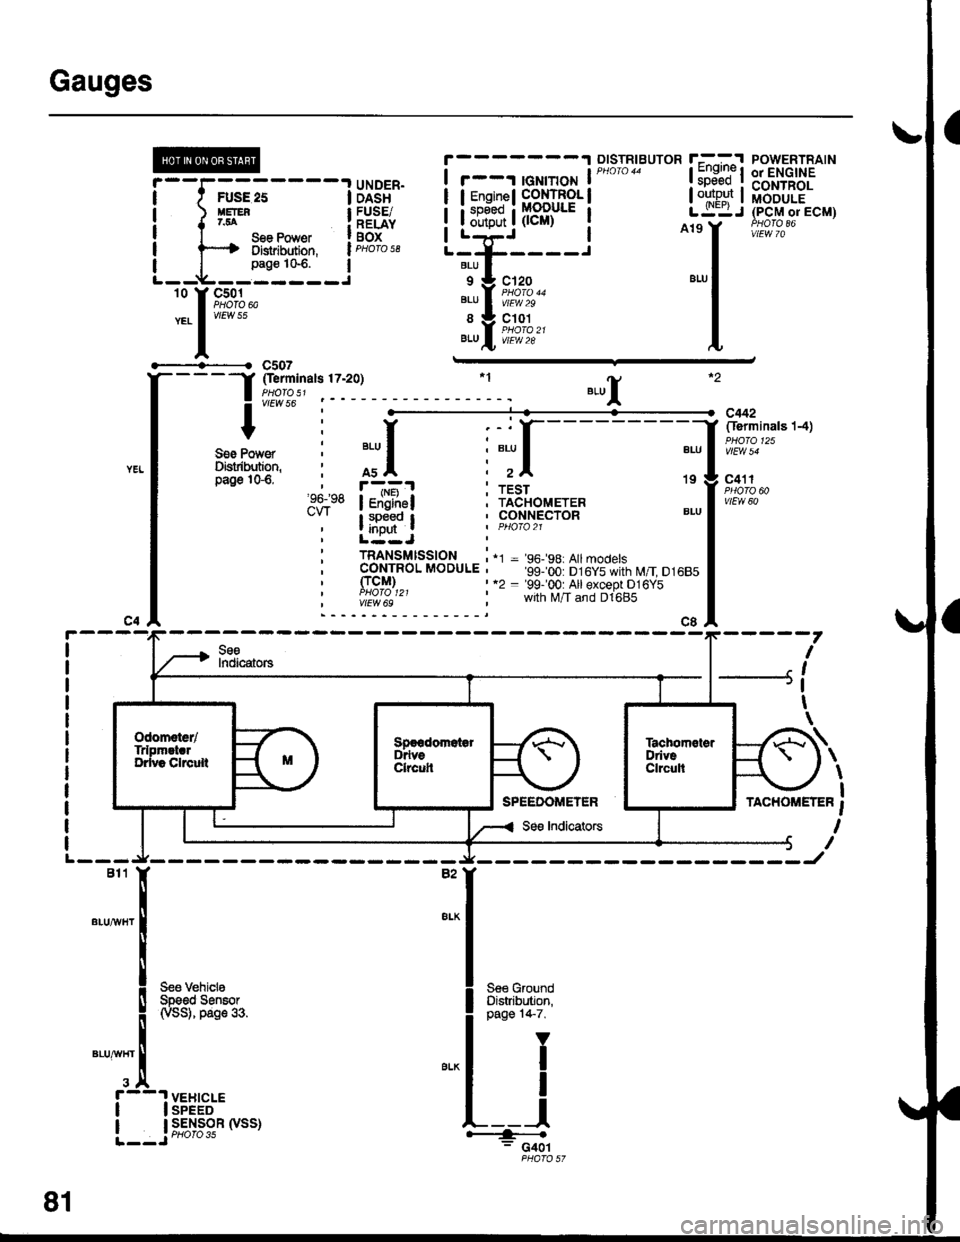 1972 mercruiser control box diagram